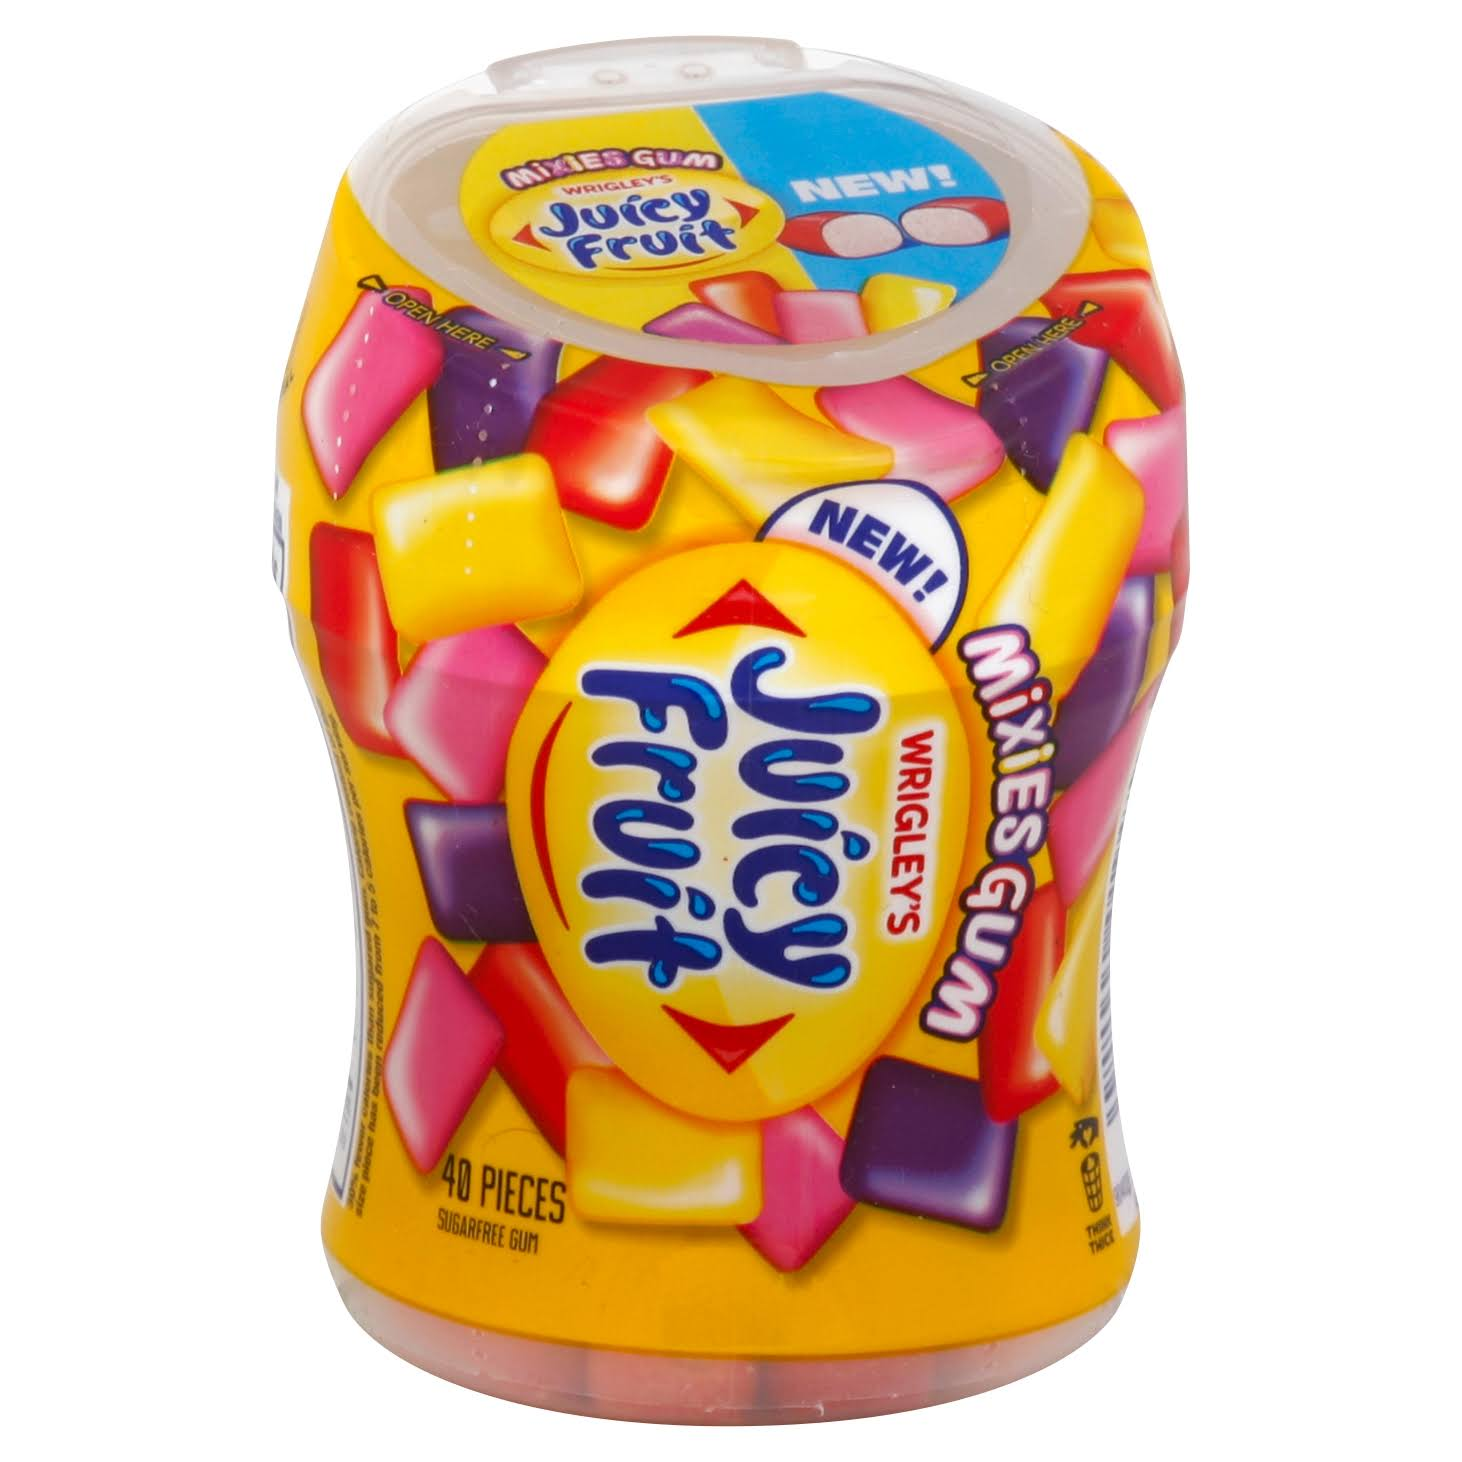 Juicy Fruit Gum, Sugar Free, Mixies Gum - 40 pieces